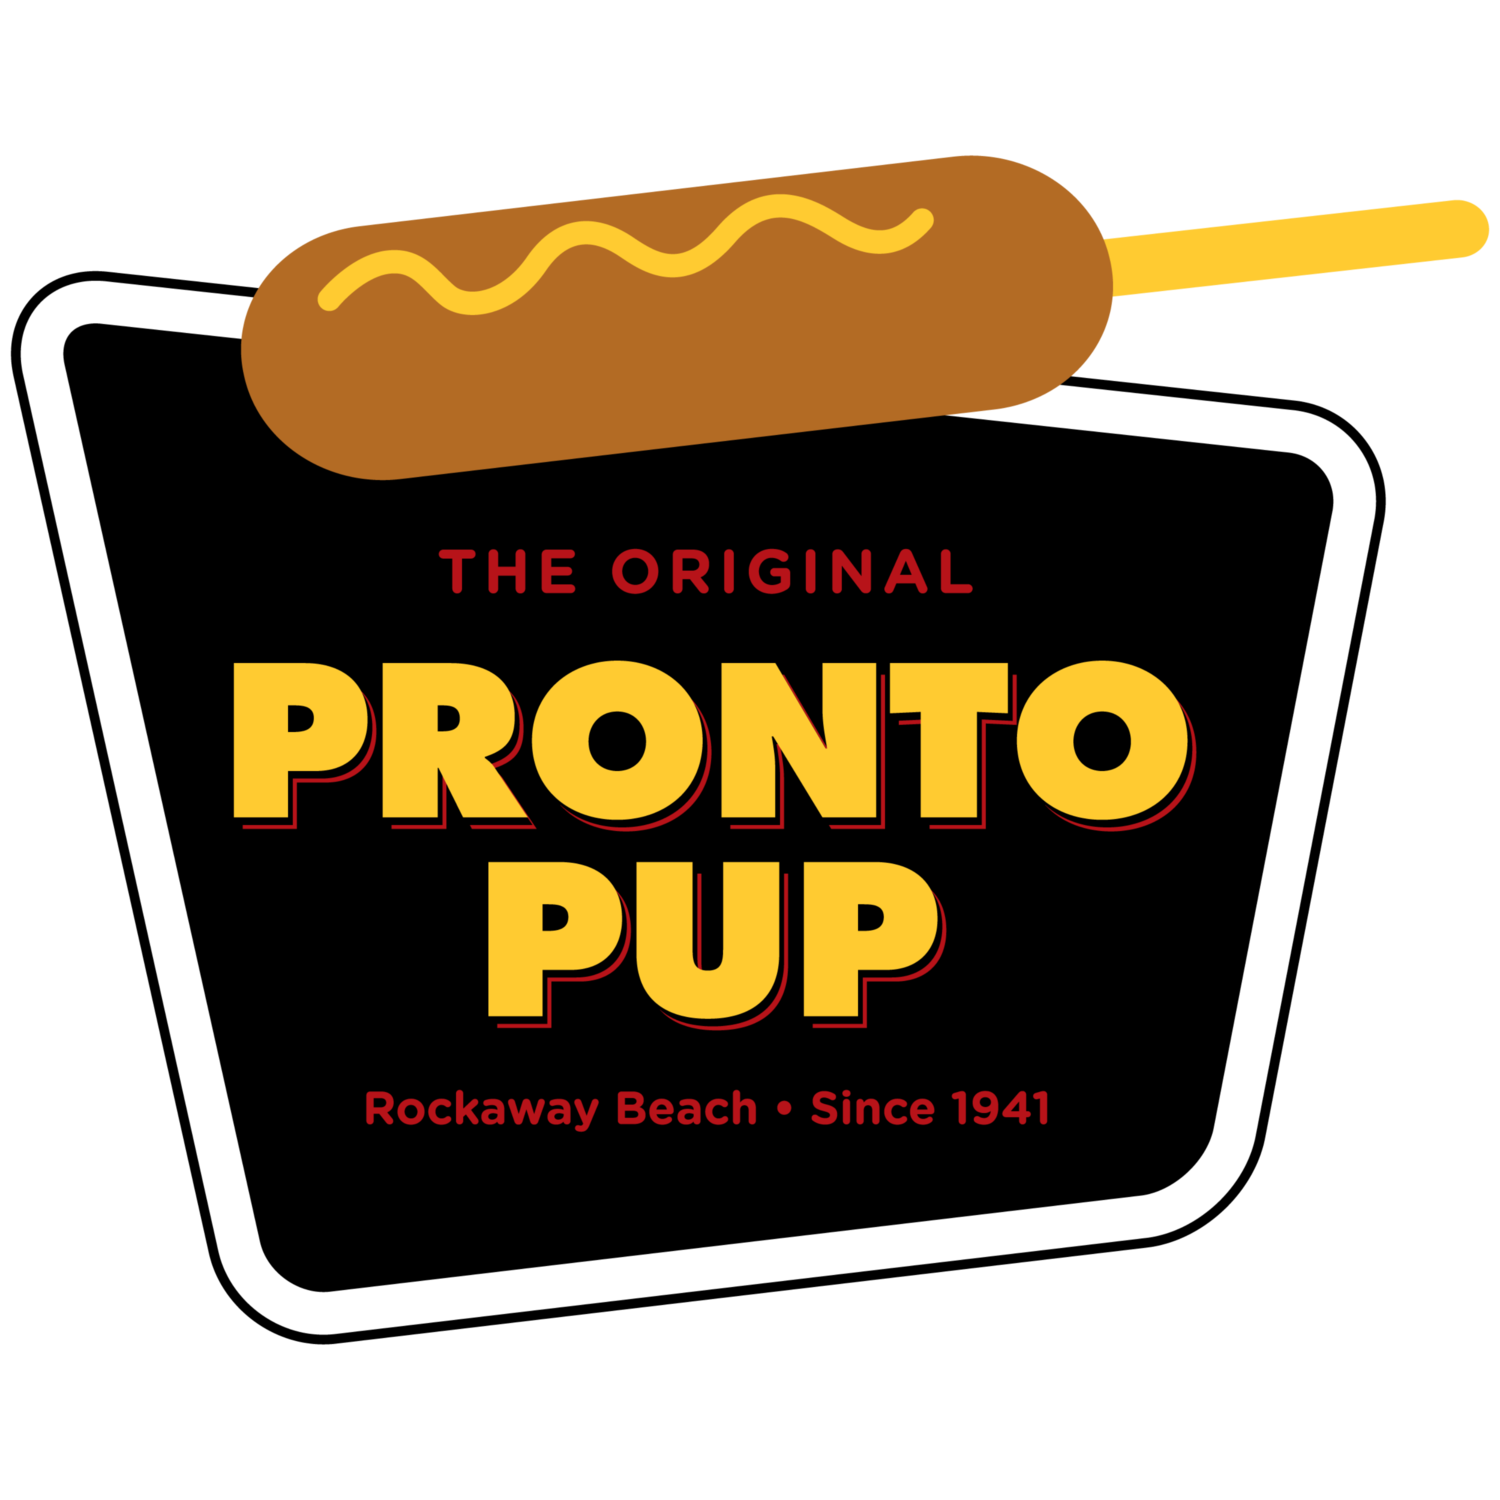 The Original Pronto Pup